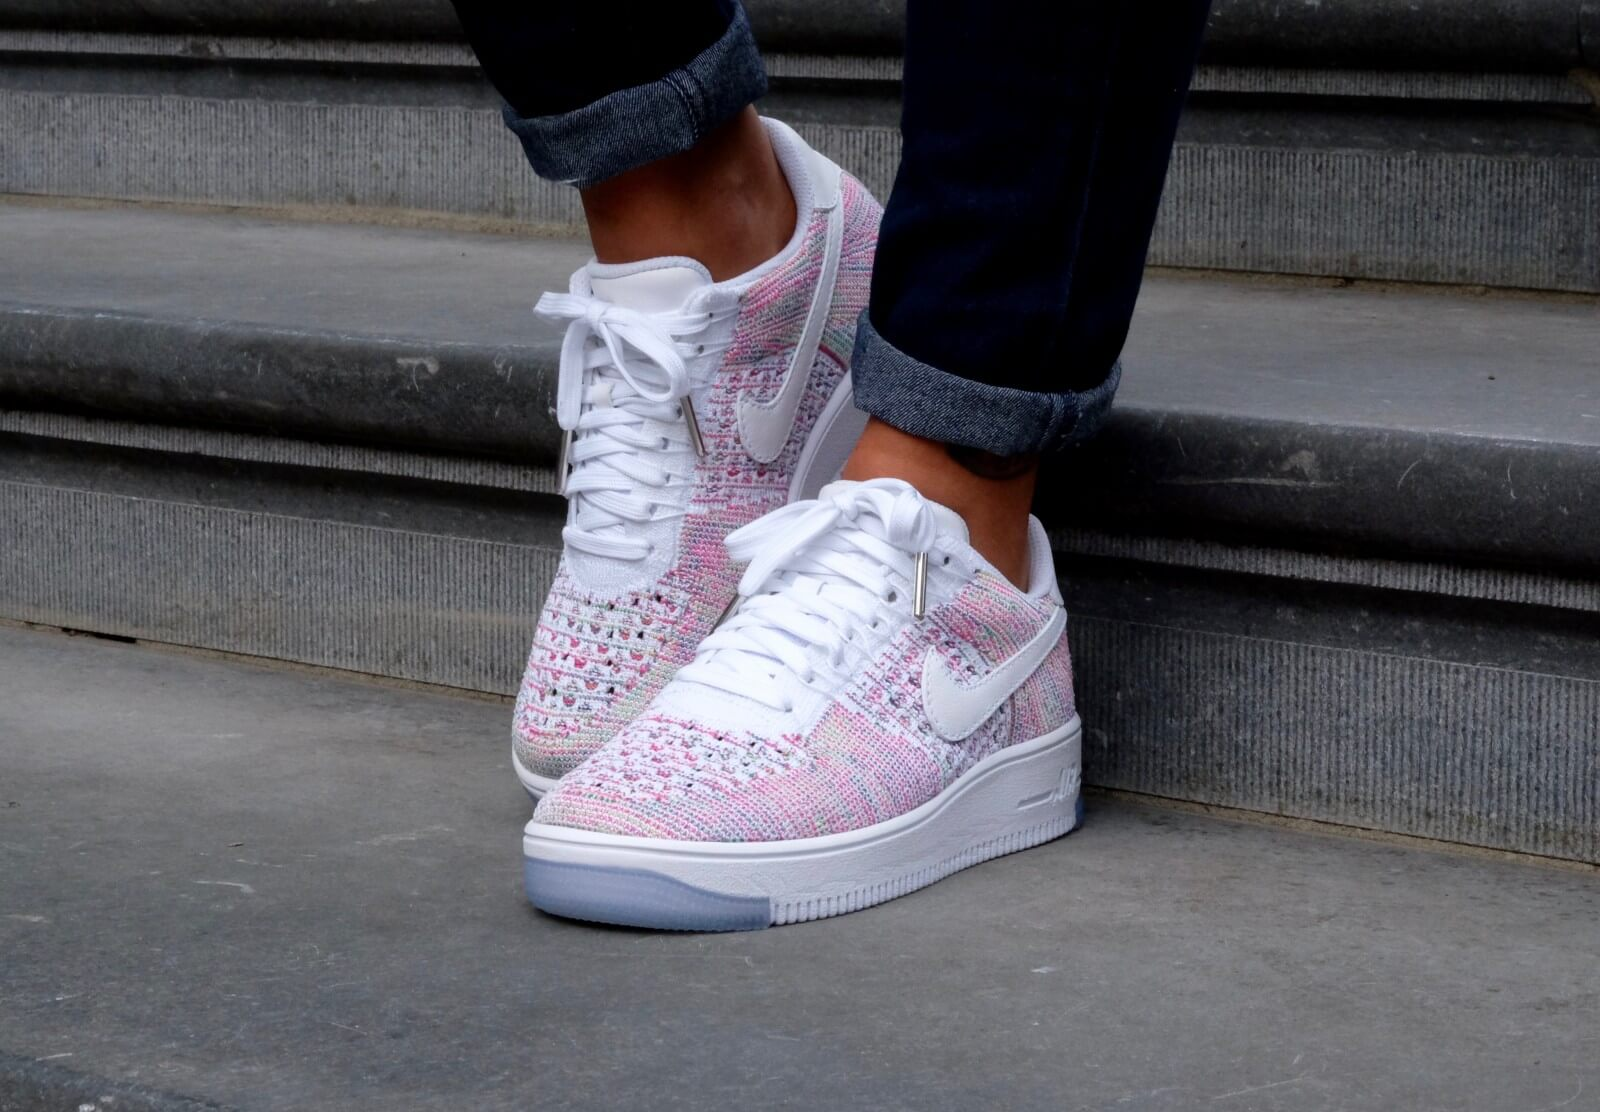 Nike Air Force 1 Flyknit Low Whitewhite radiant emerald 820256 102